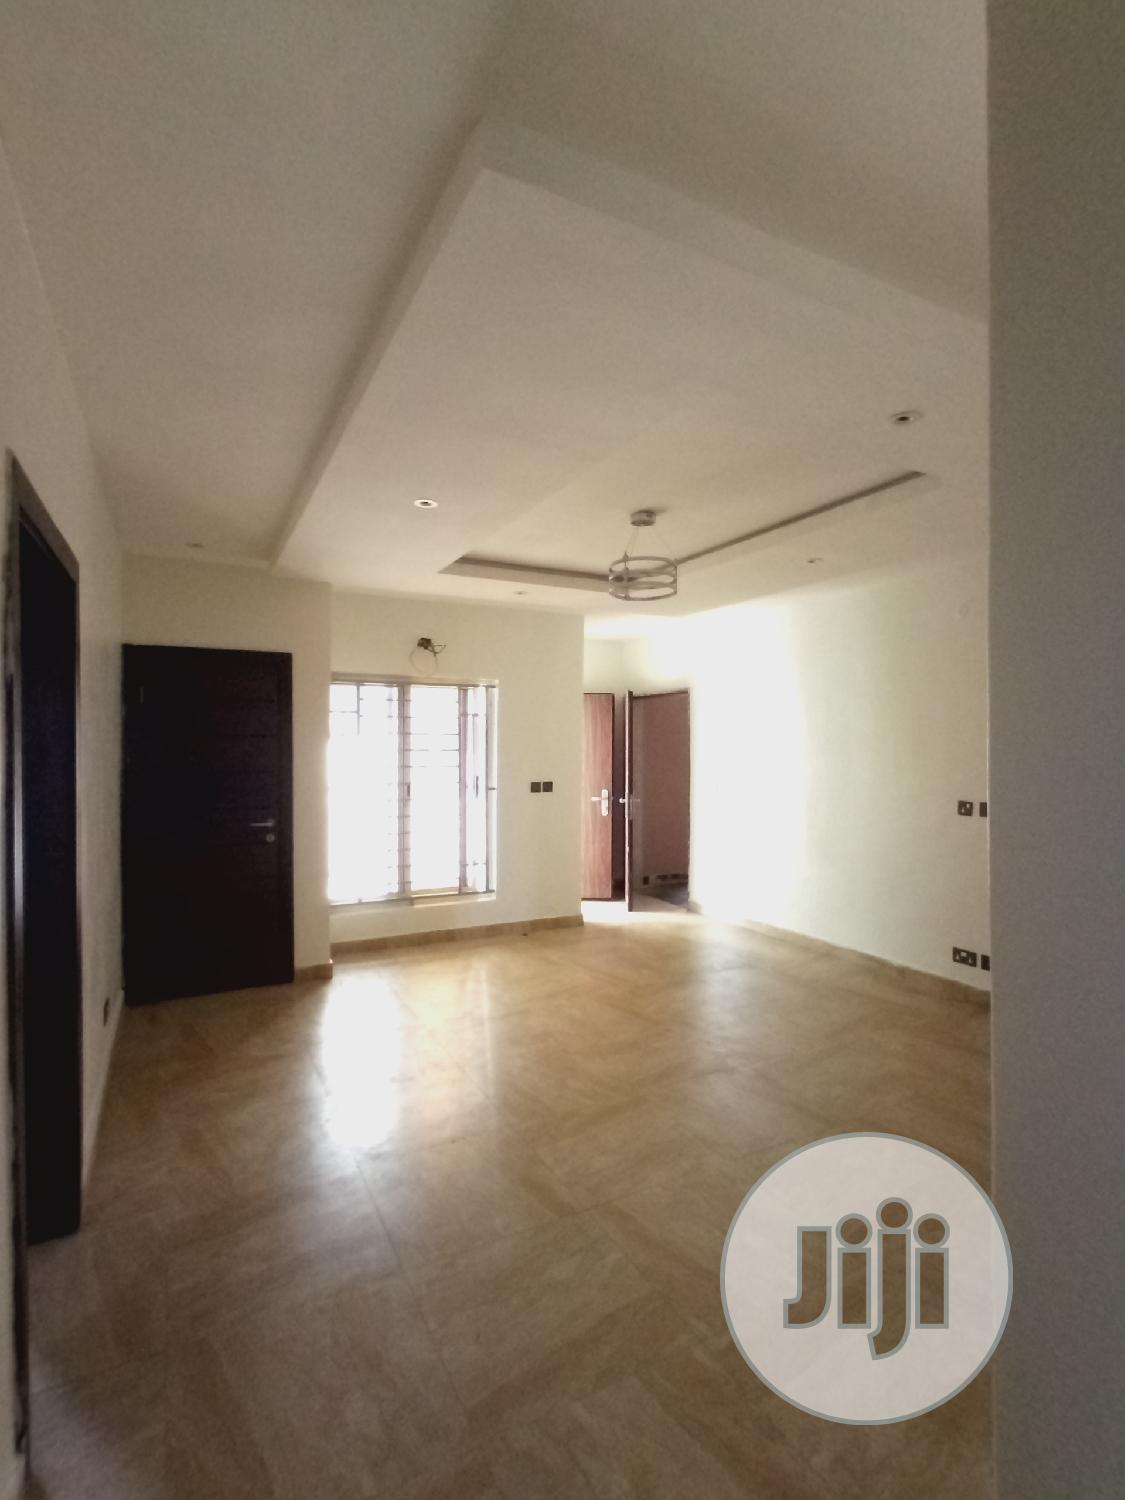 2bedroom Flat For Sale | Houses & Apartments For Sale for sale in Lekki Phase 1, Lagos State, Nigeria